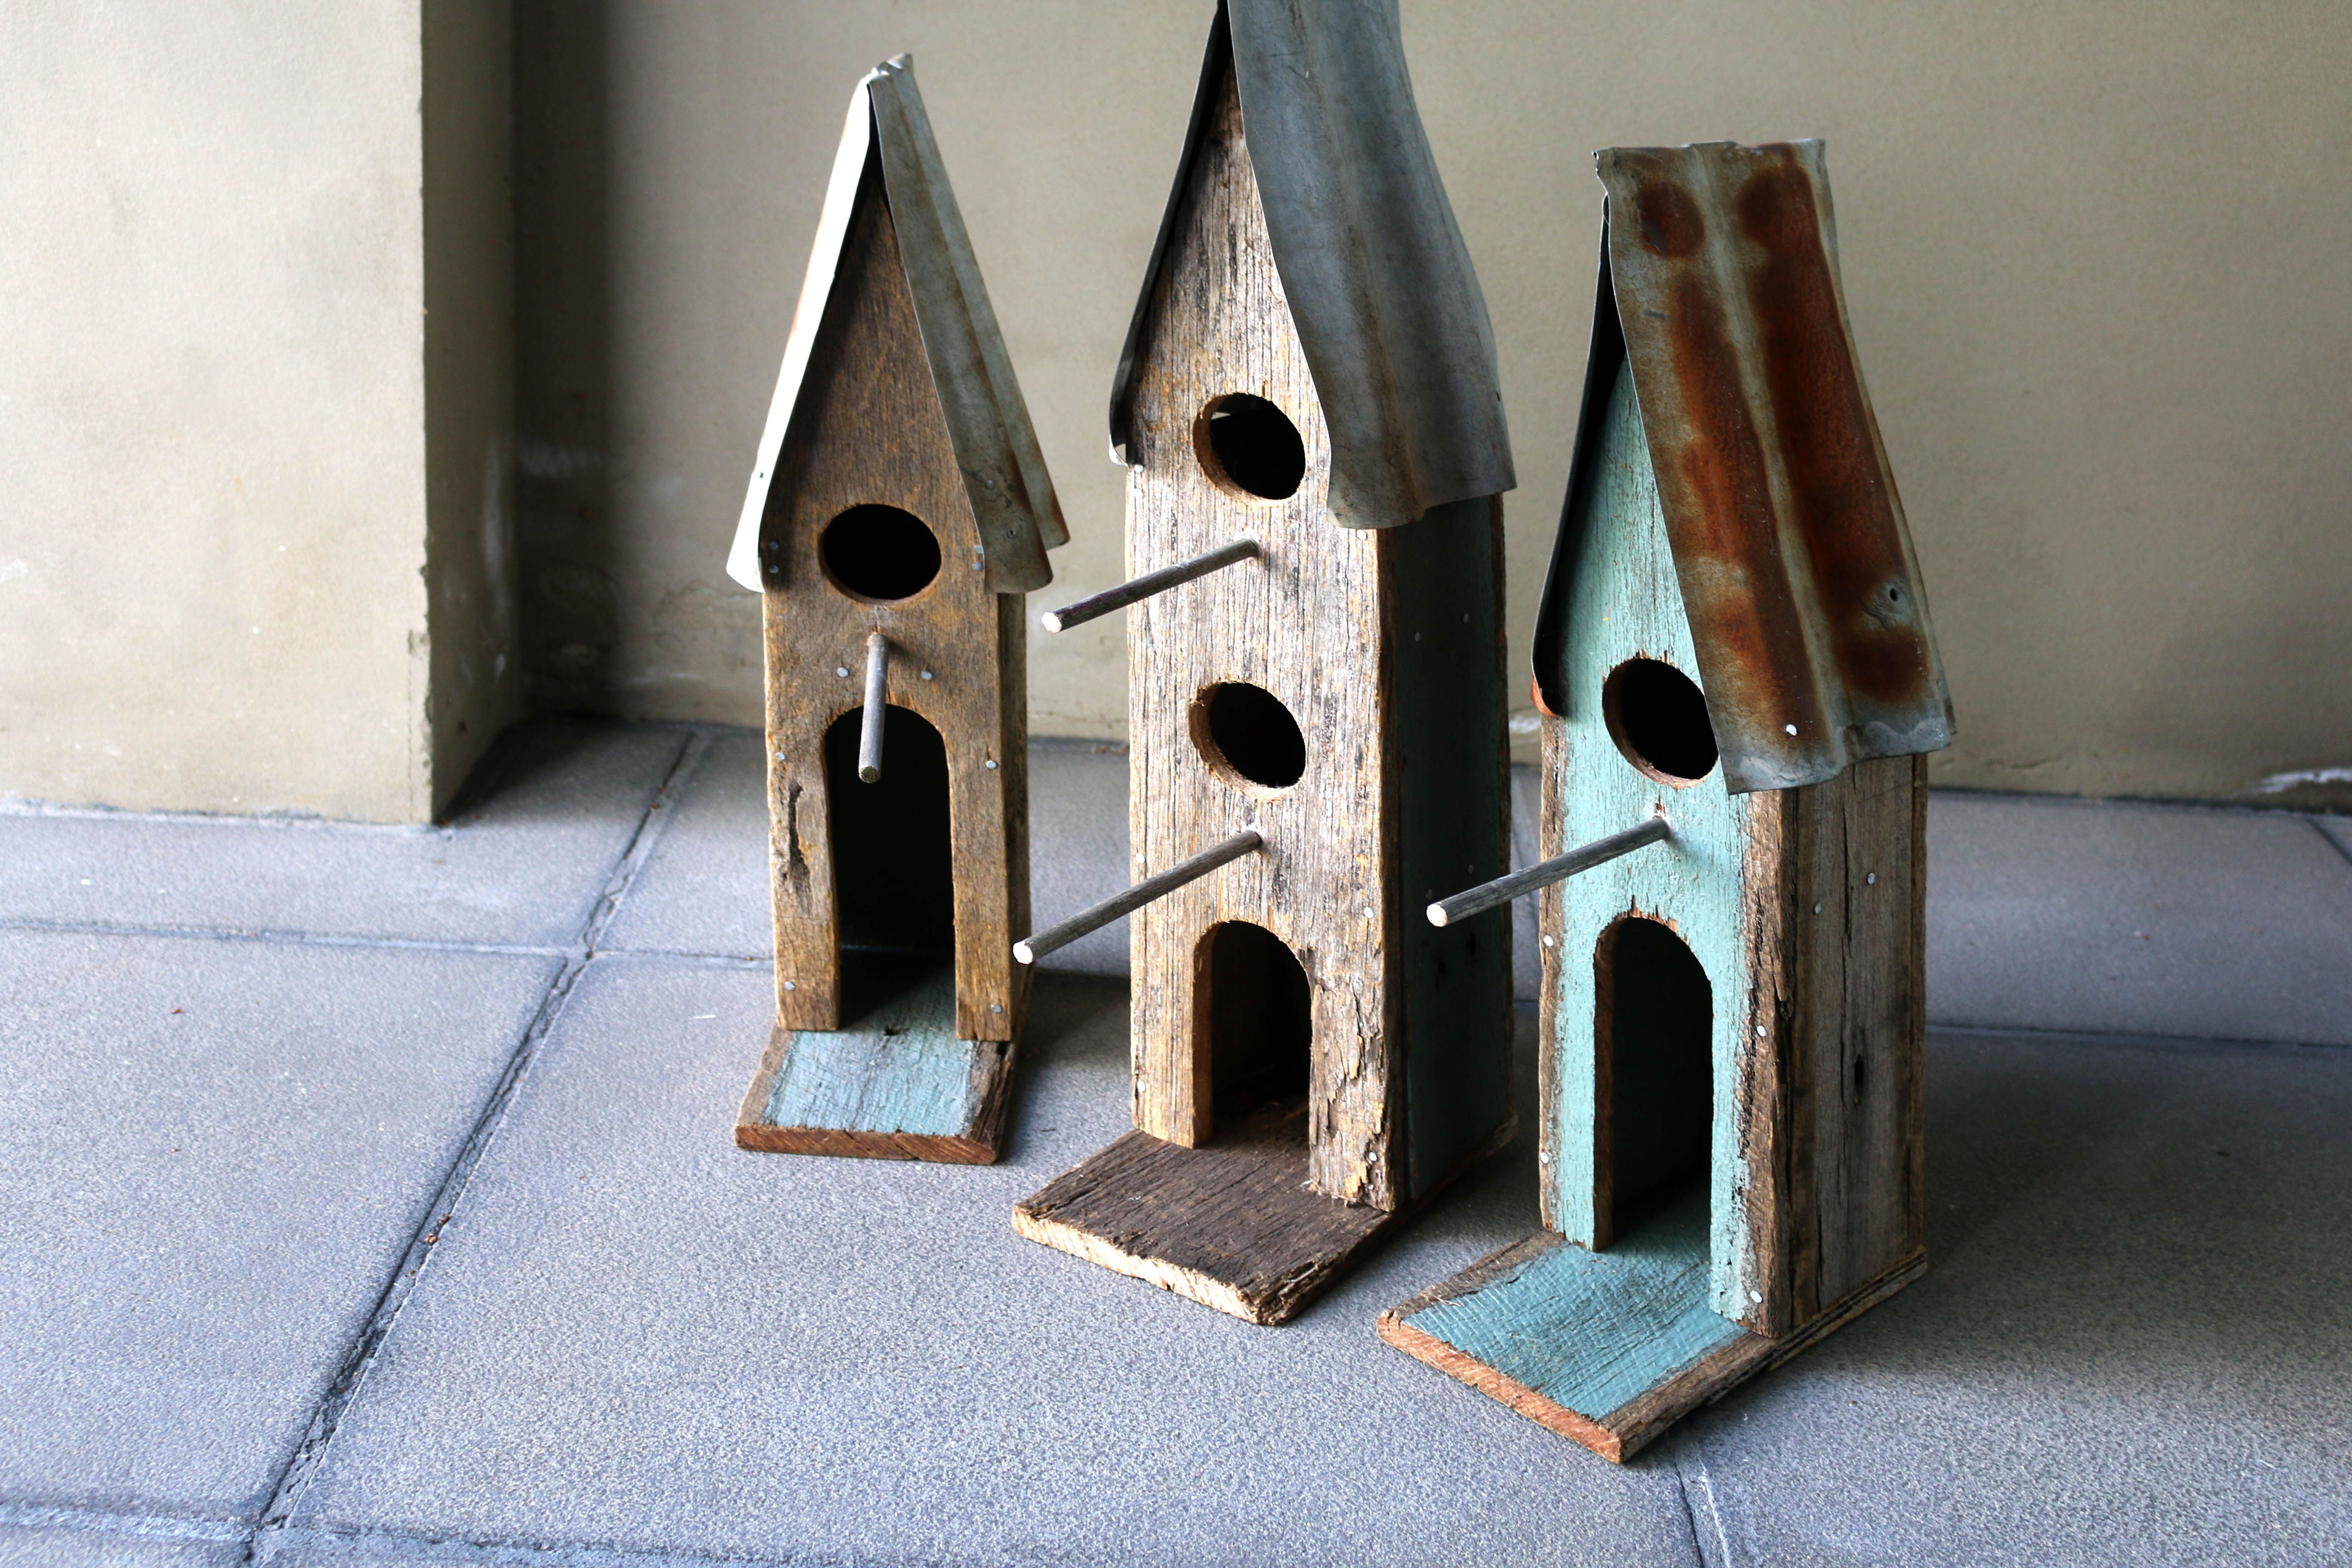 Boodle Concepts Sustainable Birdhouse Wall Art Bird House Design In Melbourne Rustic Timber Corrugated Iron Des Bird Houses Handmade Birdhouses Bird House